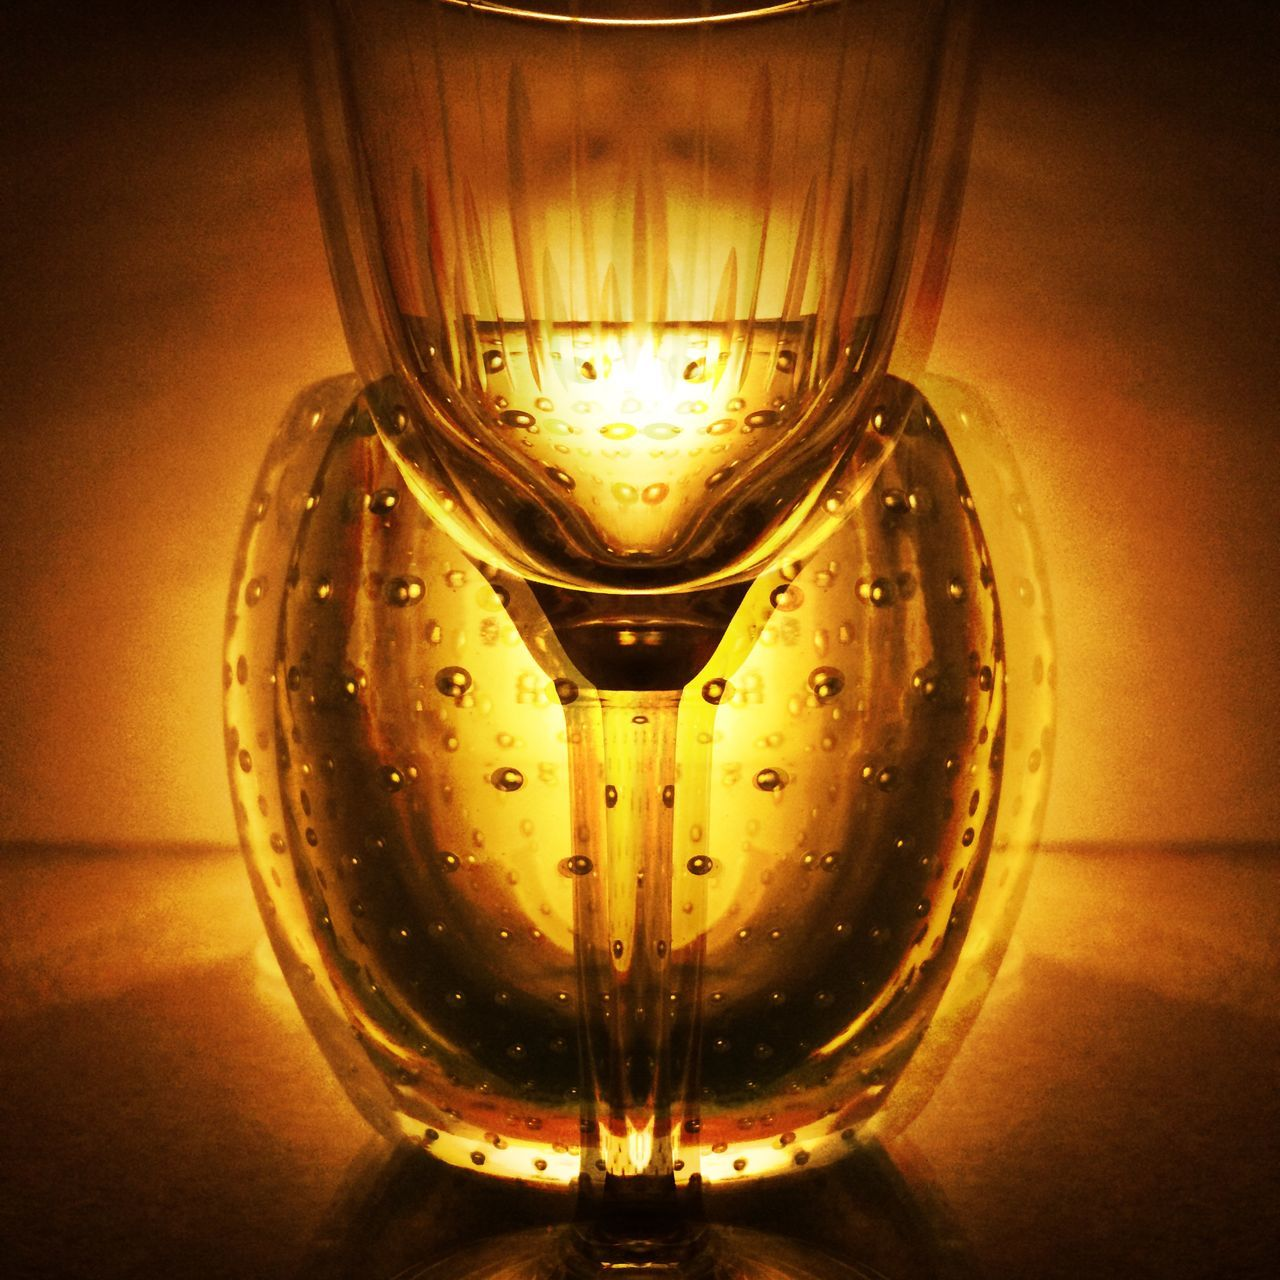 no people, glowing, indoors, table, close-up, drinking glass, illuminated, wine, drink, alcohol, filament